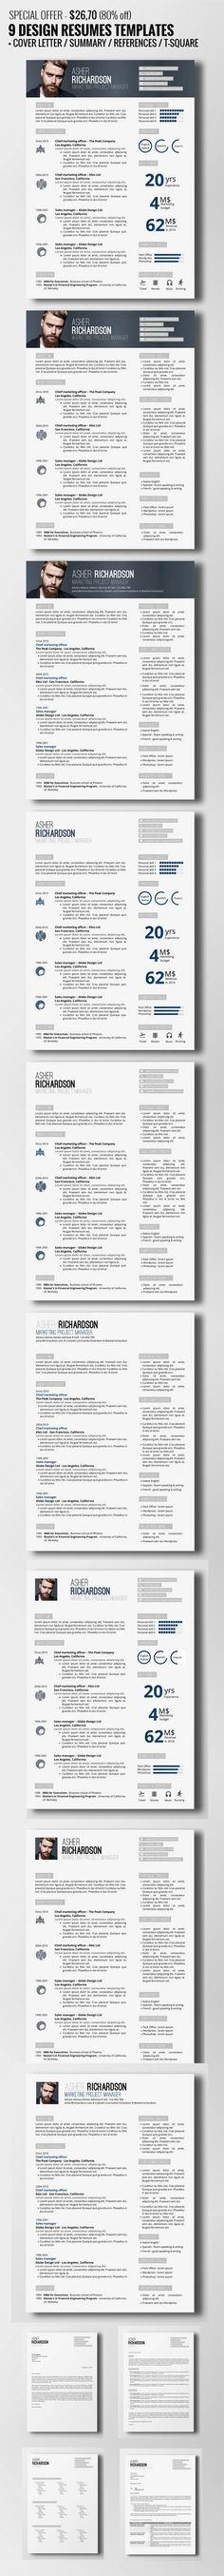 435 best Resume images on Pinterest Resume design, Design resume - design quotation sample